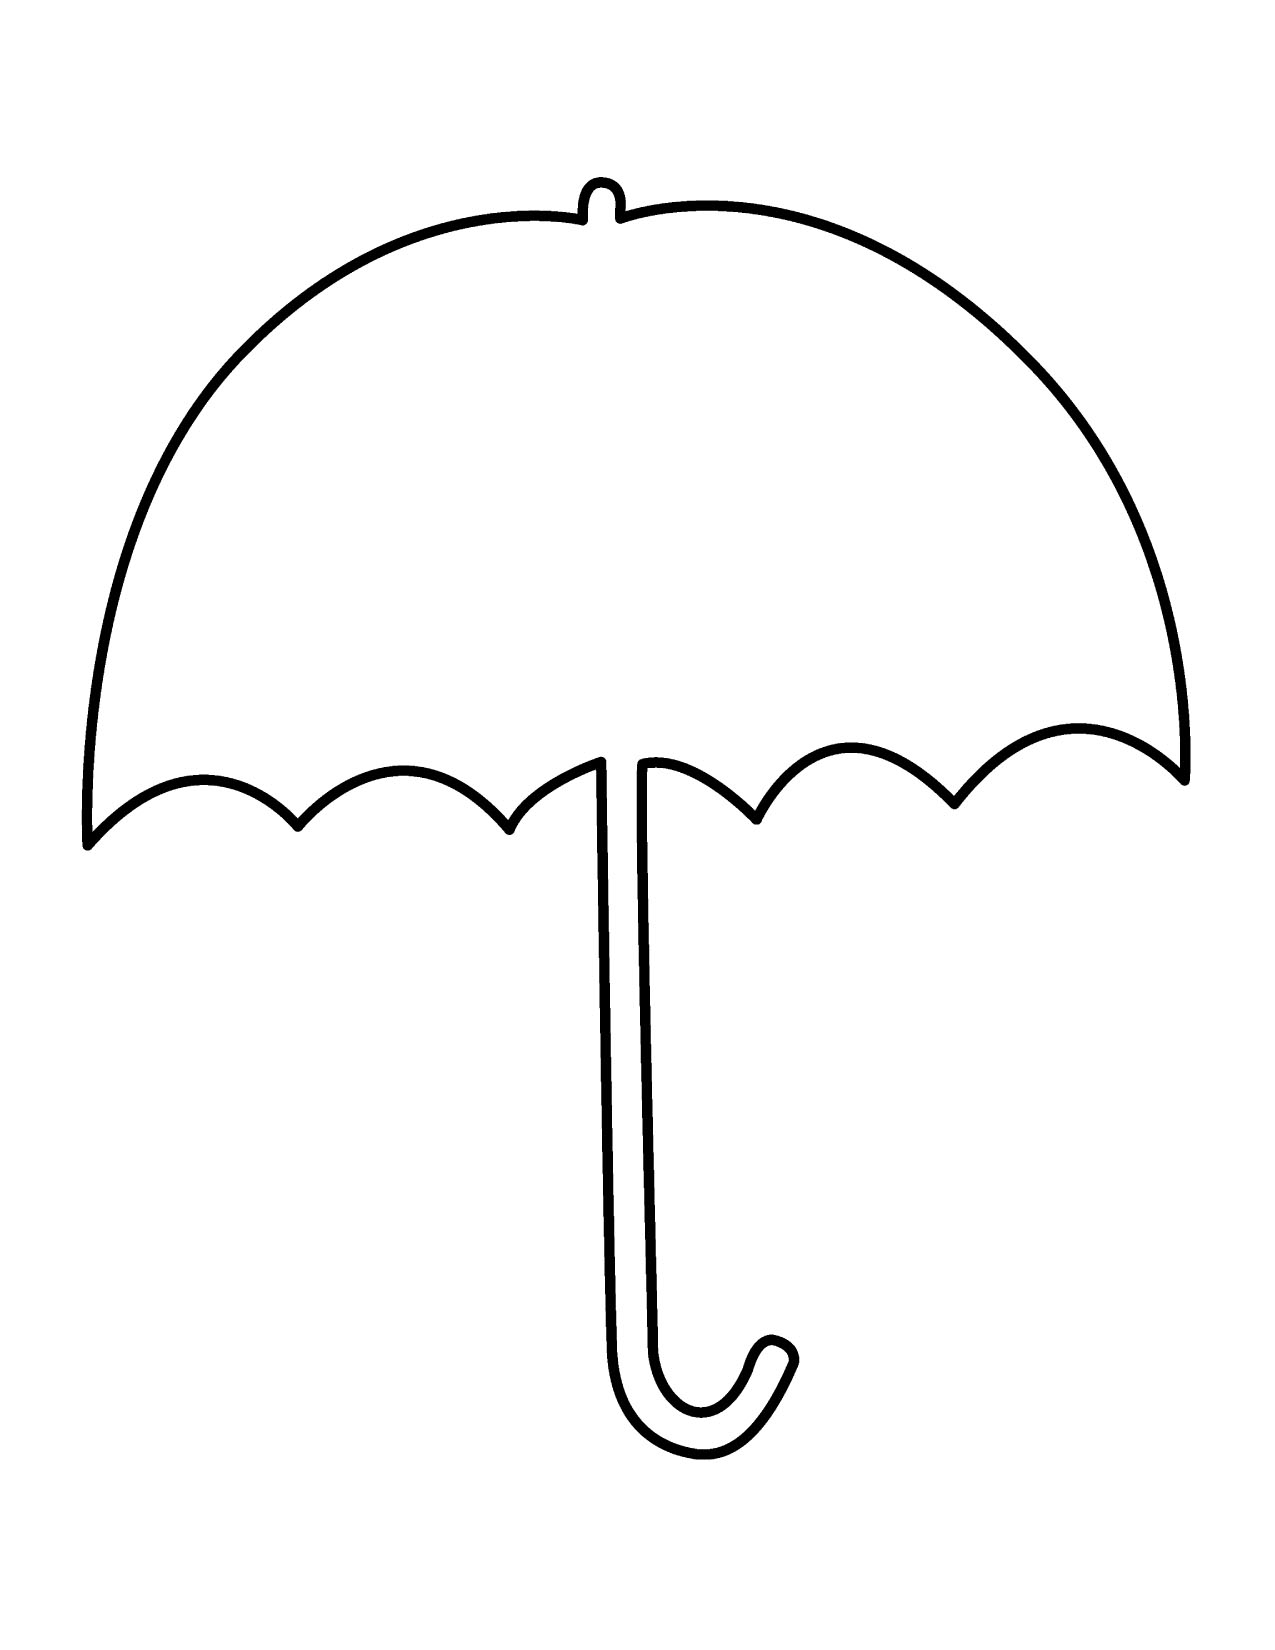 umbrella coloring pages | Printable Raindrops - ClipArt Best